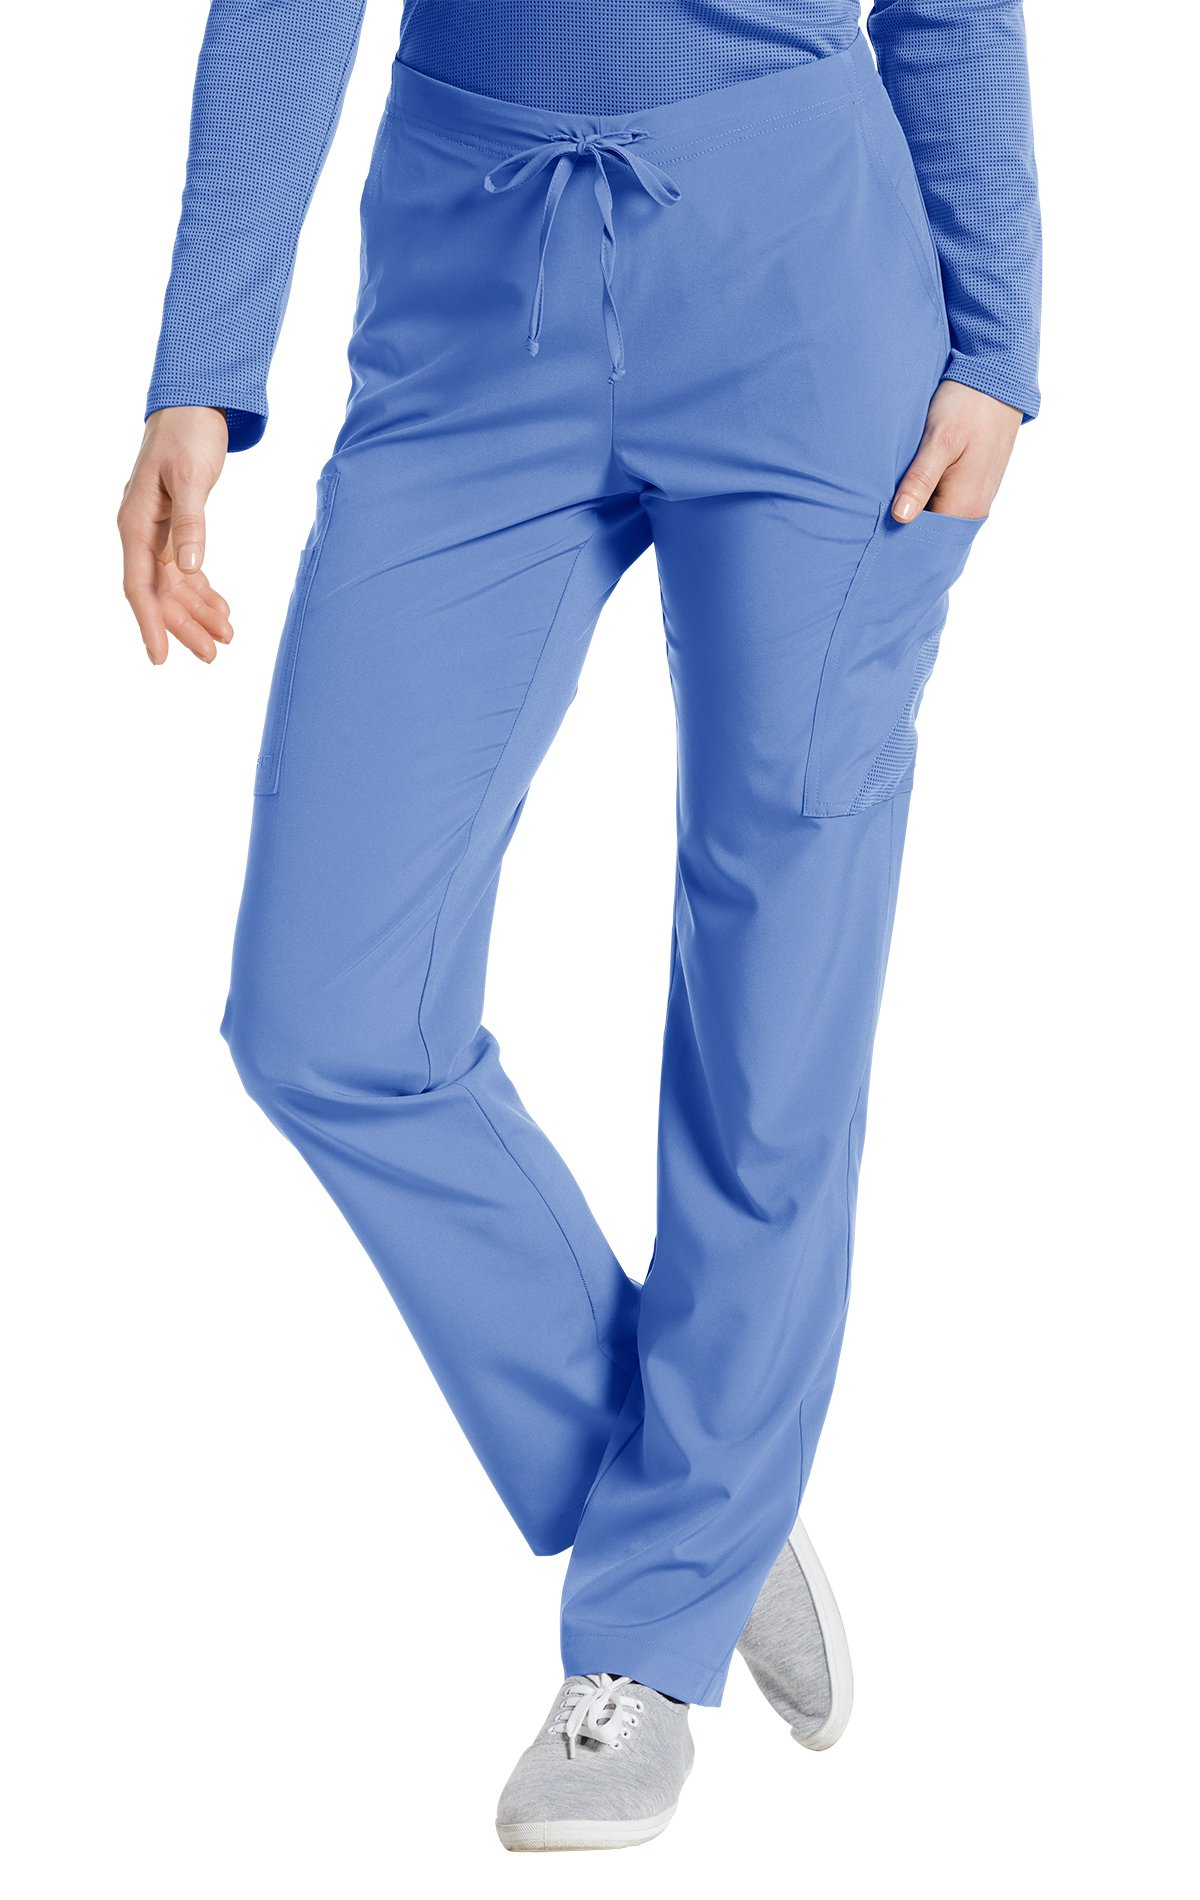 Fit by White Cross Women's 397 Drawstring/Back Elastic Waist Cargo Pant- Ciel Blue- Small